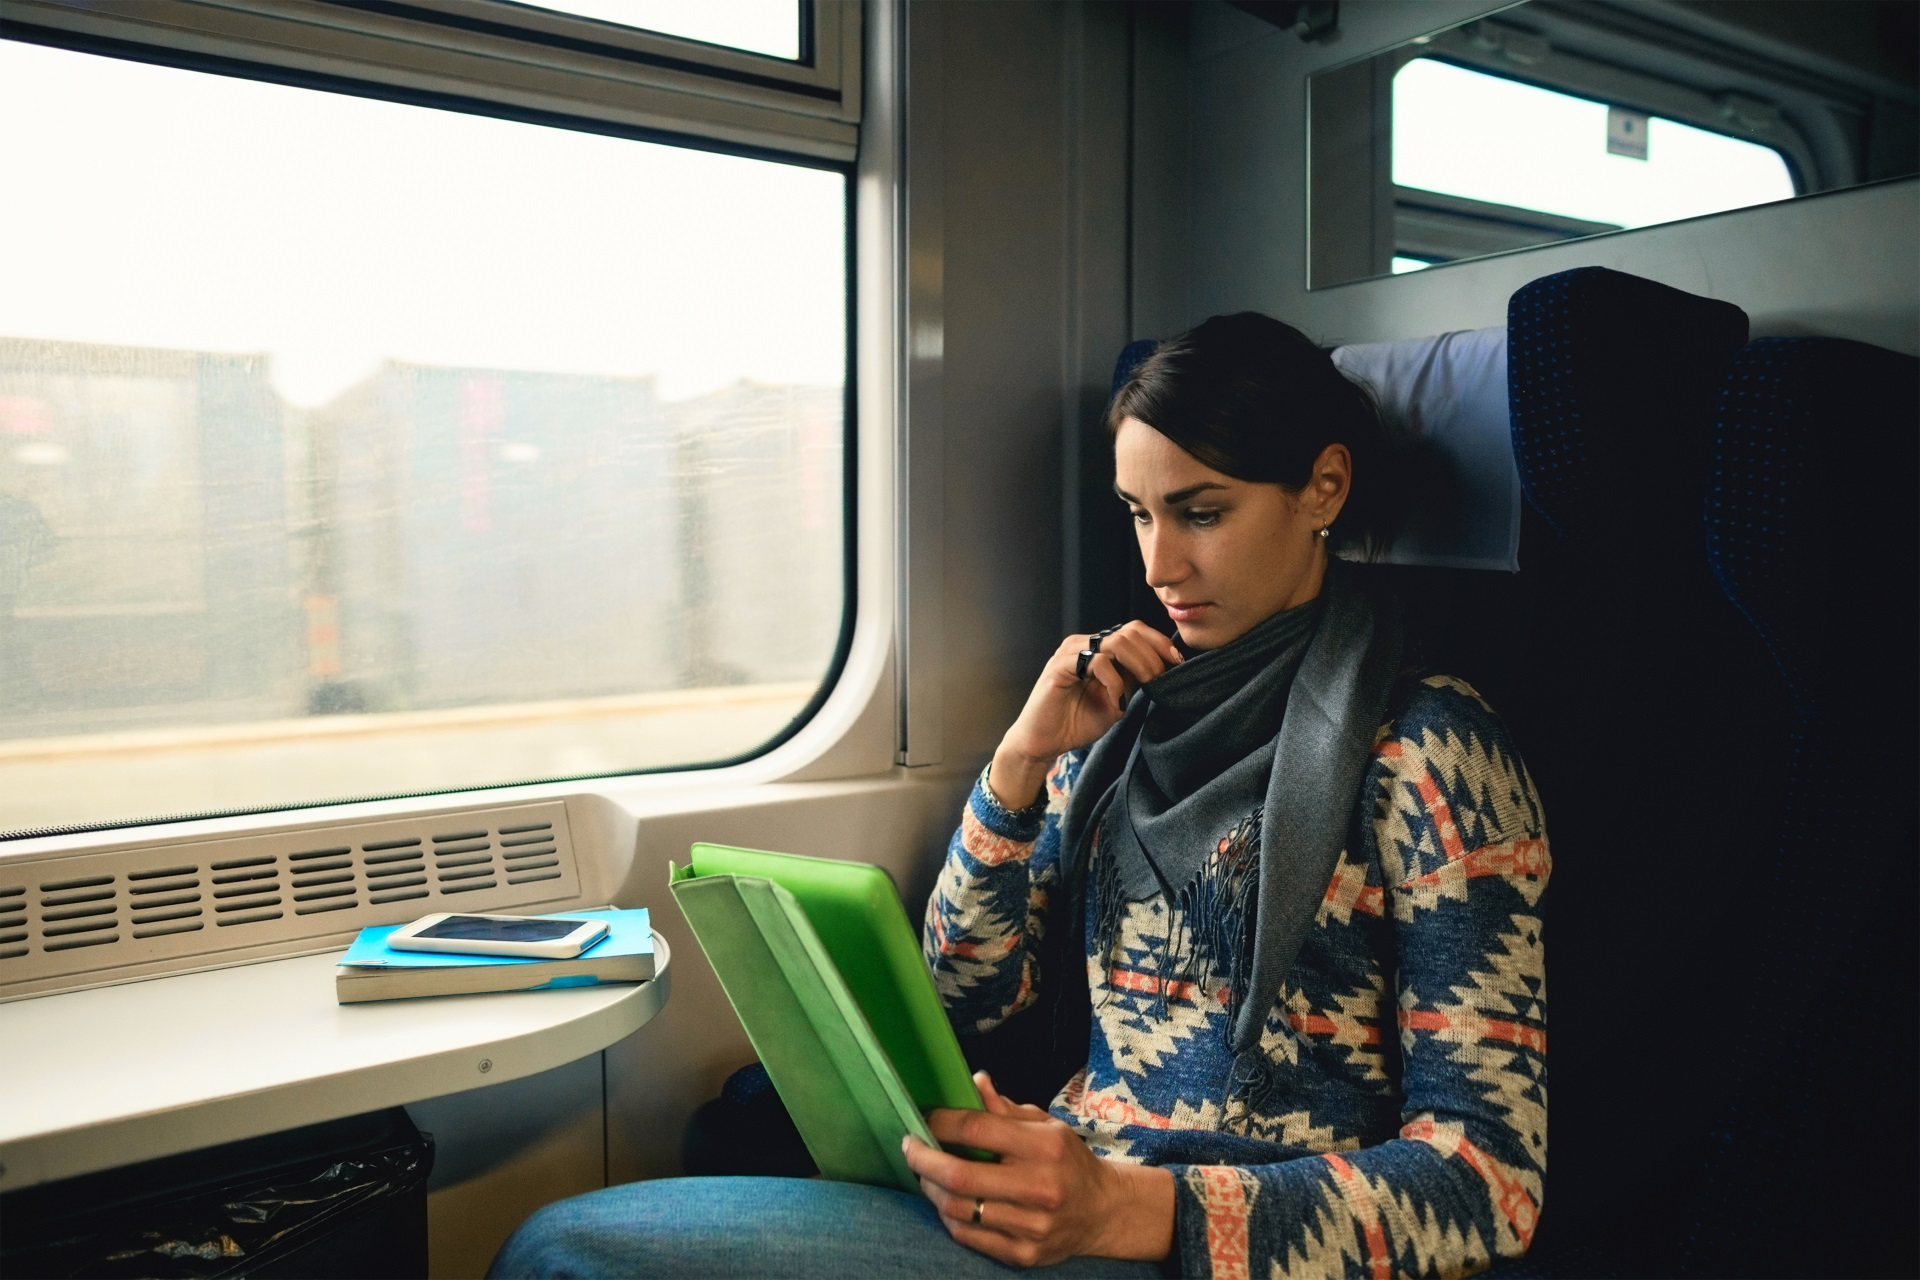 A woman using her Tap with her tablet while riding the train